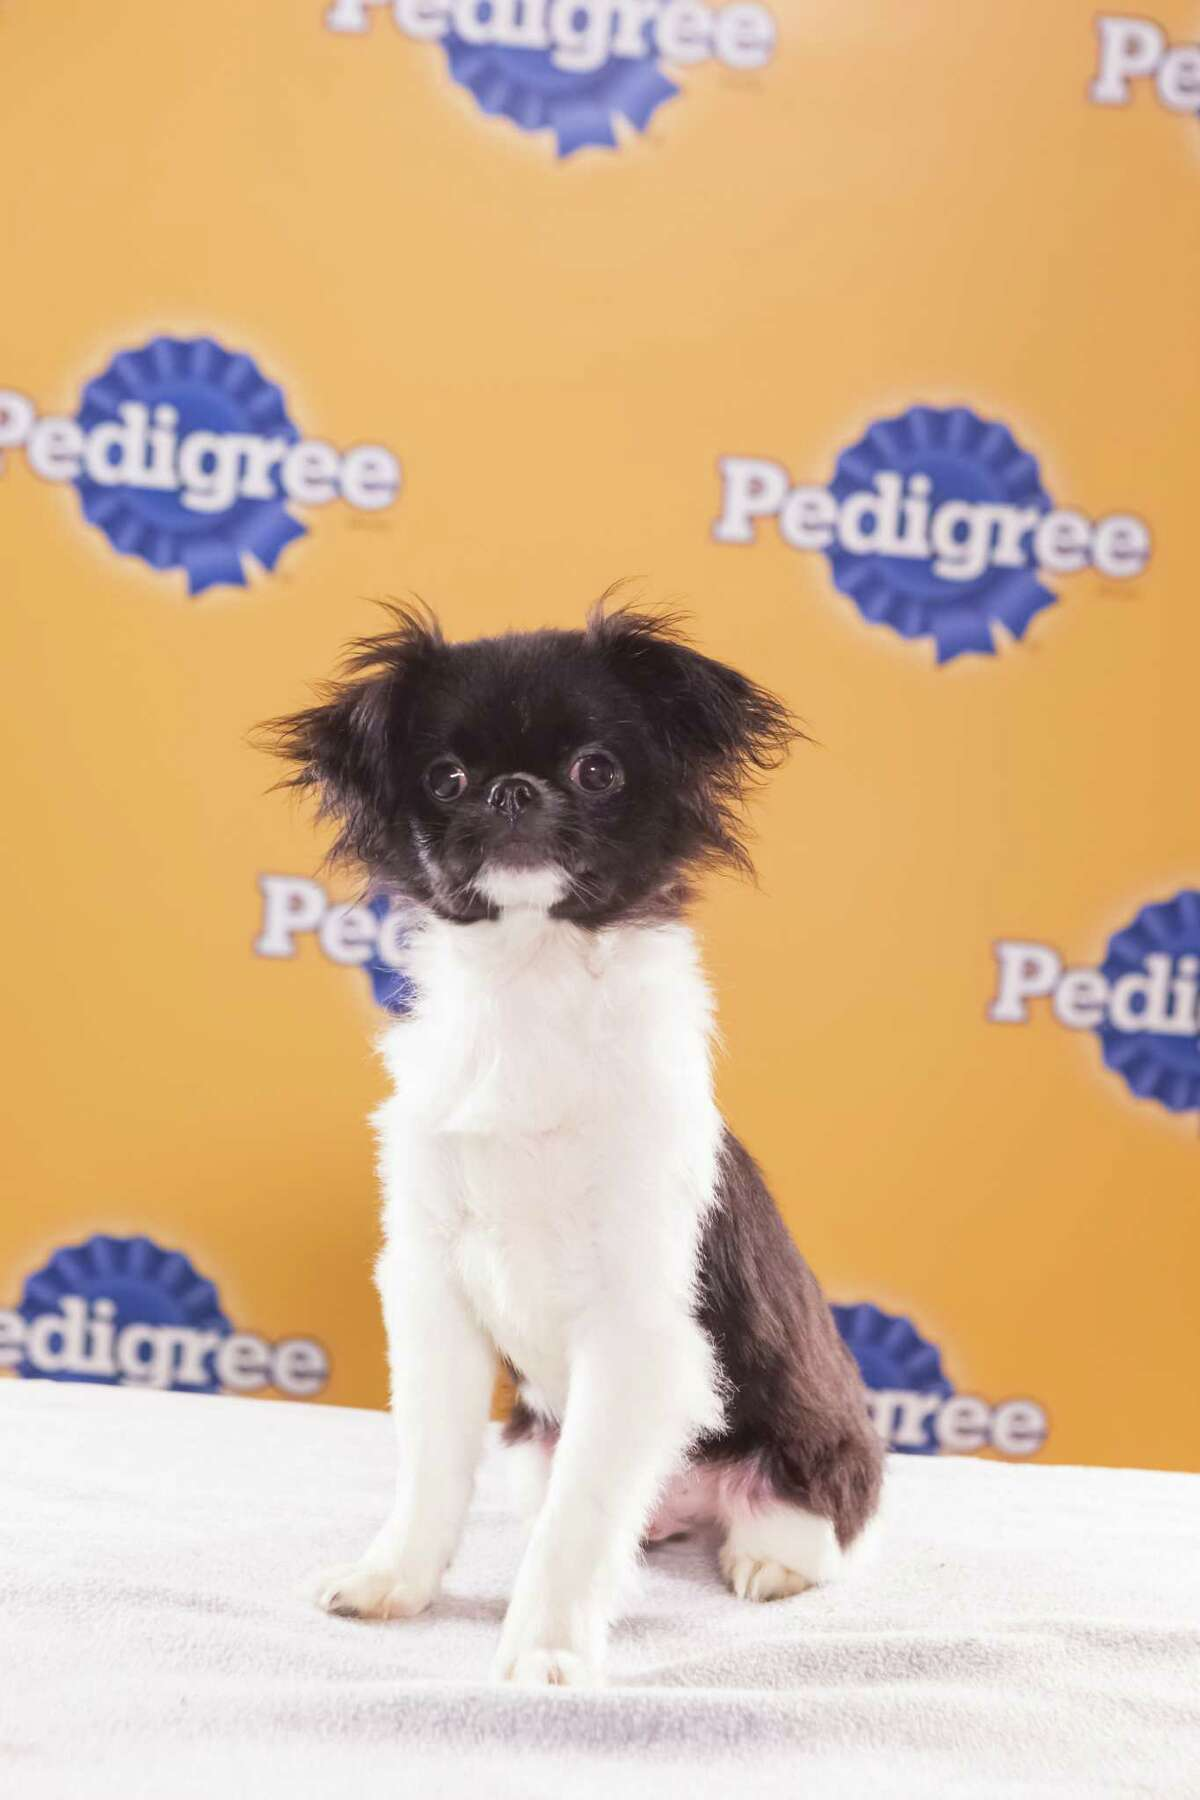 Name: SimbaBreed(s): Japanese Chin Sex: Male Age: 8 weeks Fun Fact: Very playful and confident with other dogs Adoption Organization: Tails of Love Animal Rescue